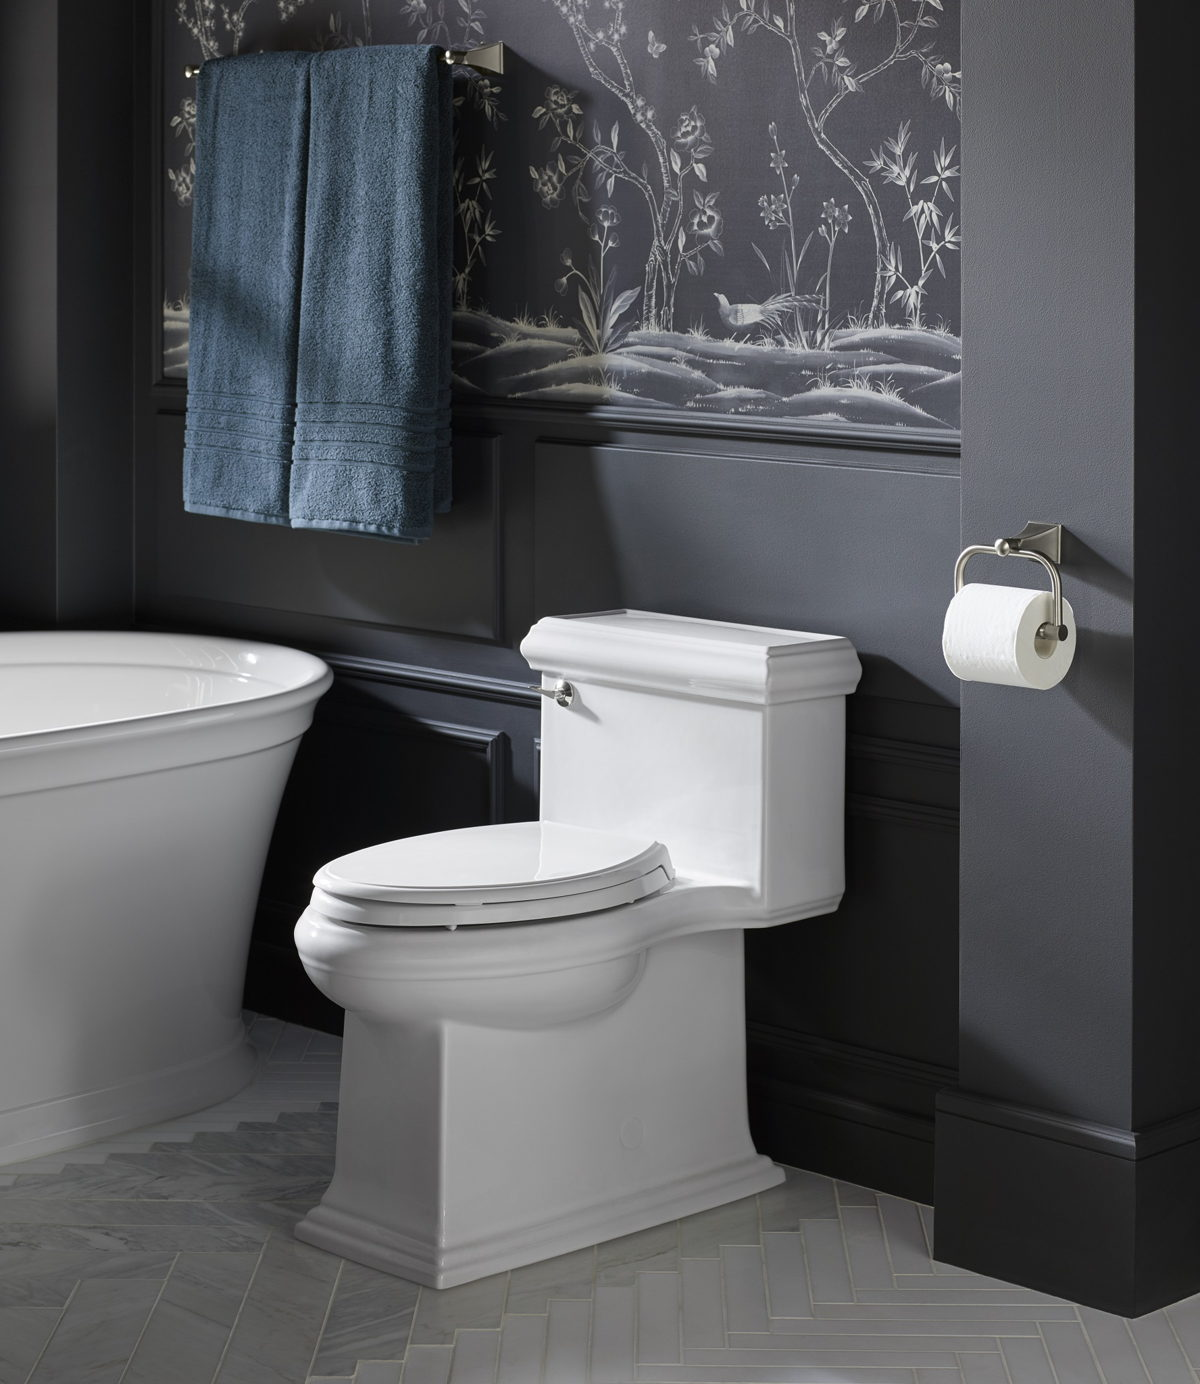 Kohler Memoirs elongated skirted toilet. Image courtesy of Kohler.